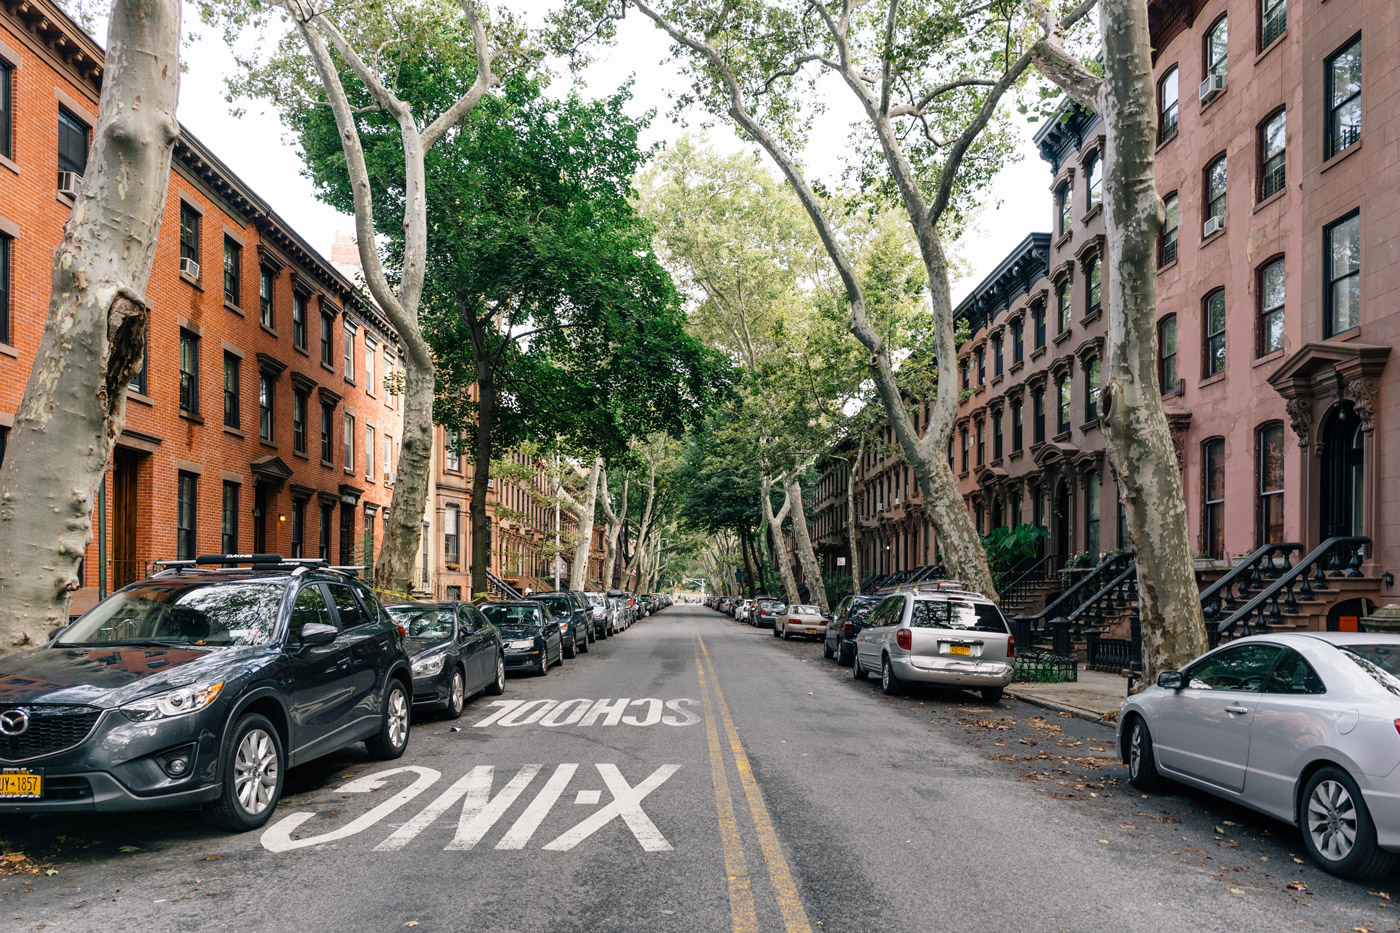 Street view of a Fort Greene neighborhood